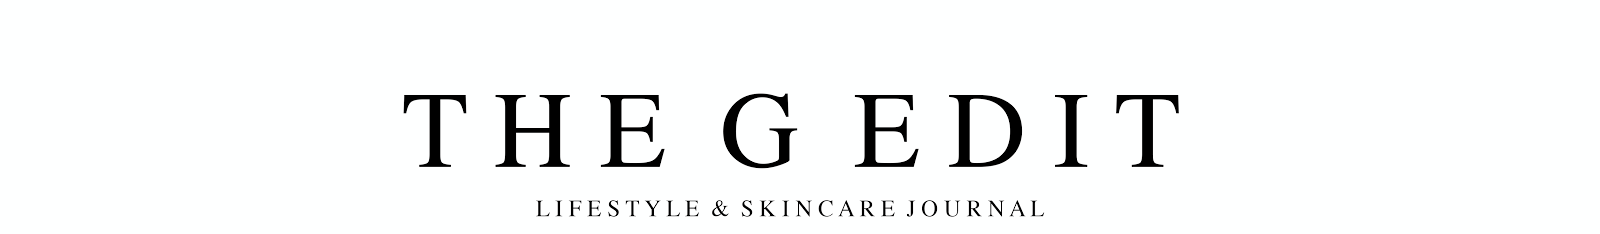 THE G EDIT | LIFESTYLE, SKINCARE & GROOMING JOURNAL